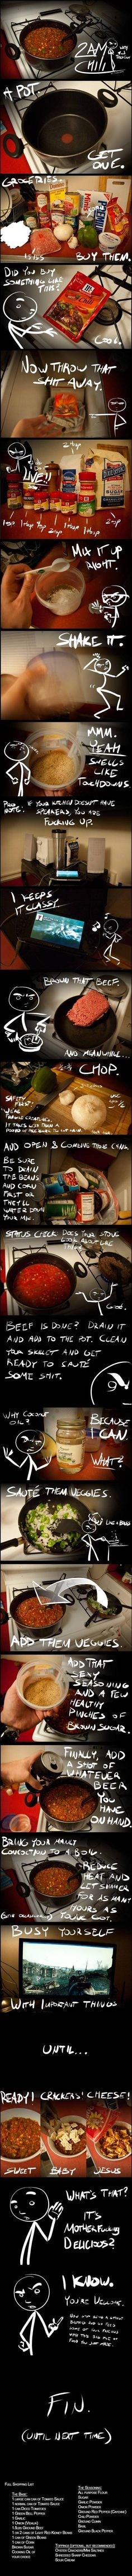 Been a while since I've seen some cooking comically on here. And it's nearly midnight here in Chicago. Perfect time to gather ingredients for 2 AM chili. - Imgur